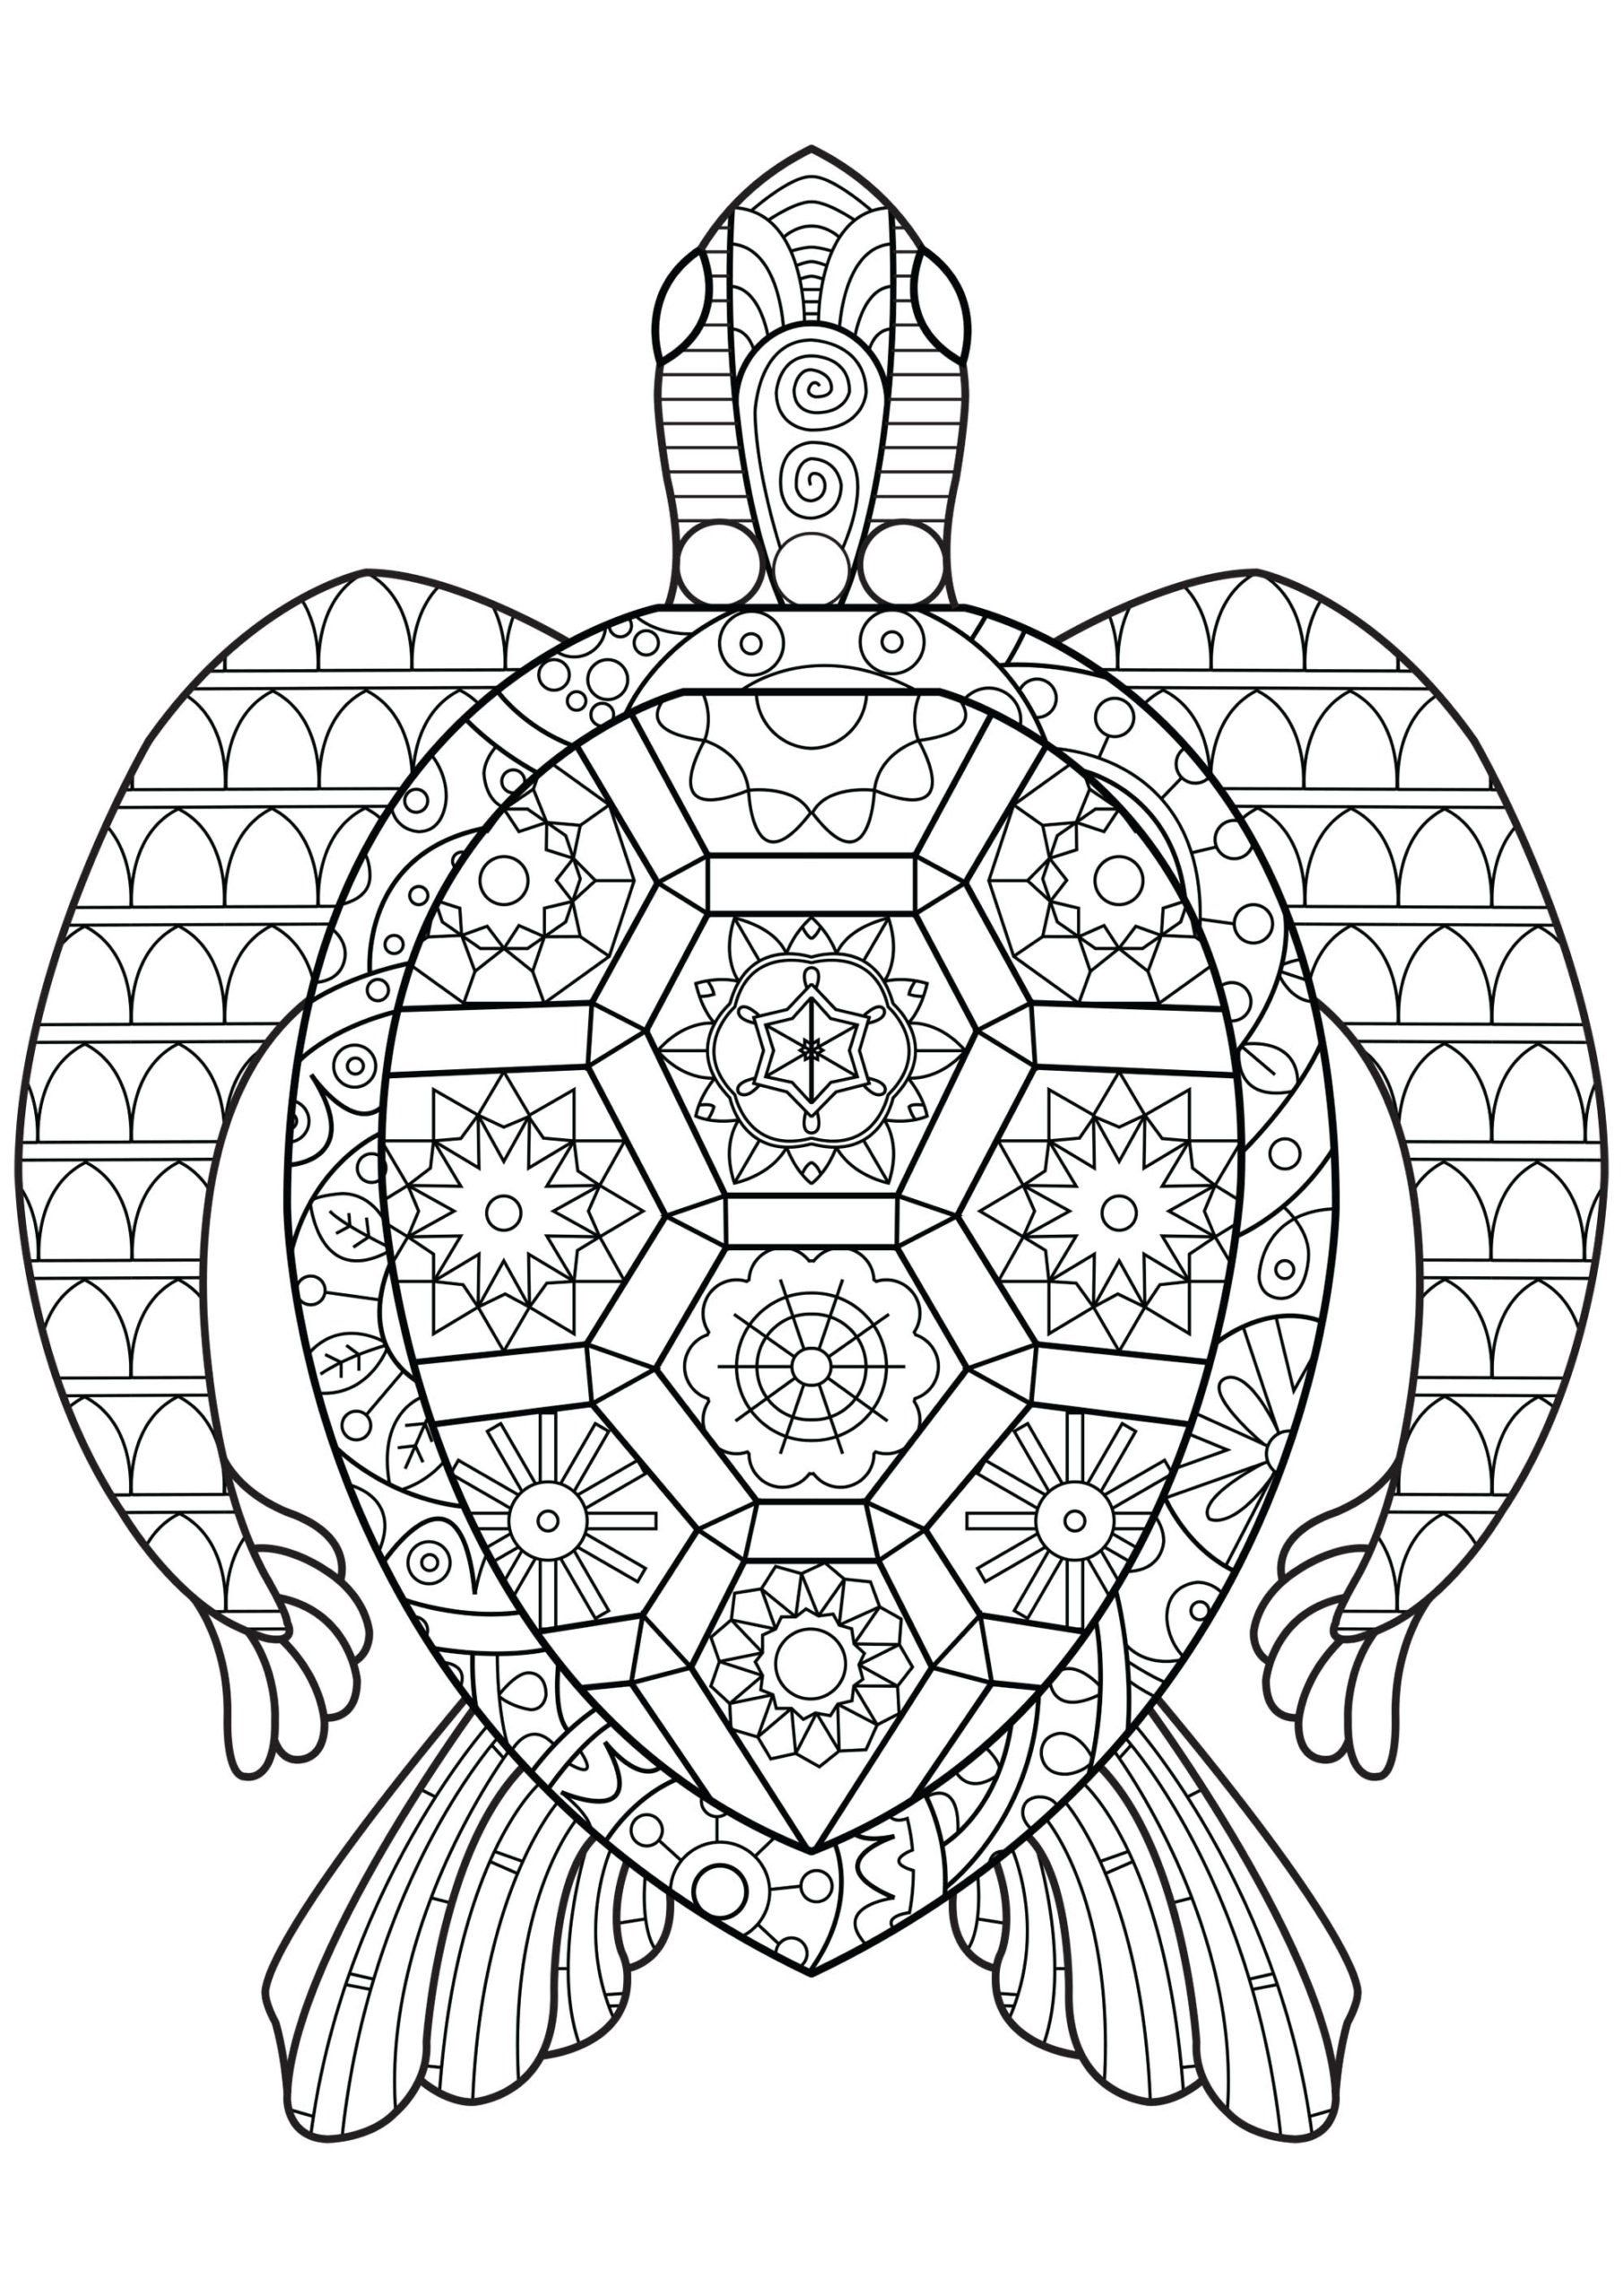 Turtle Coloring Pages For Kids Coloring Turtle Coloring Pages For Adults Image Turtle Coloring Pages Lion Coloring Pages Animal Coloring Pages